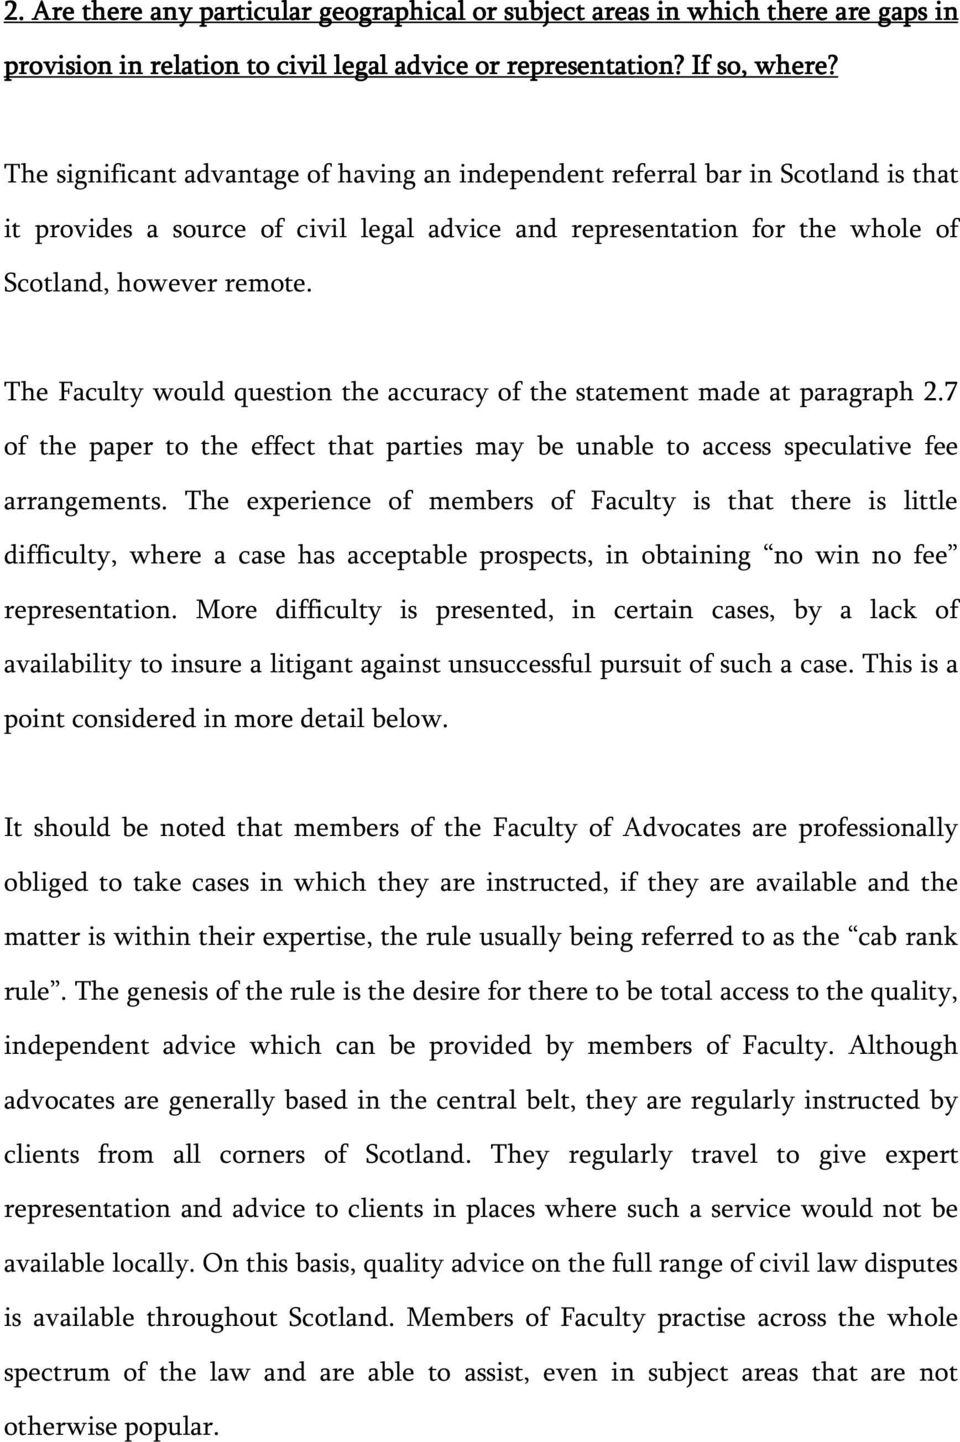 The Faculty would question the accuracy of the statement made at paragraph 2.7 of the paper to the effect that parties may be unable to access speculative fee arrangements.